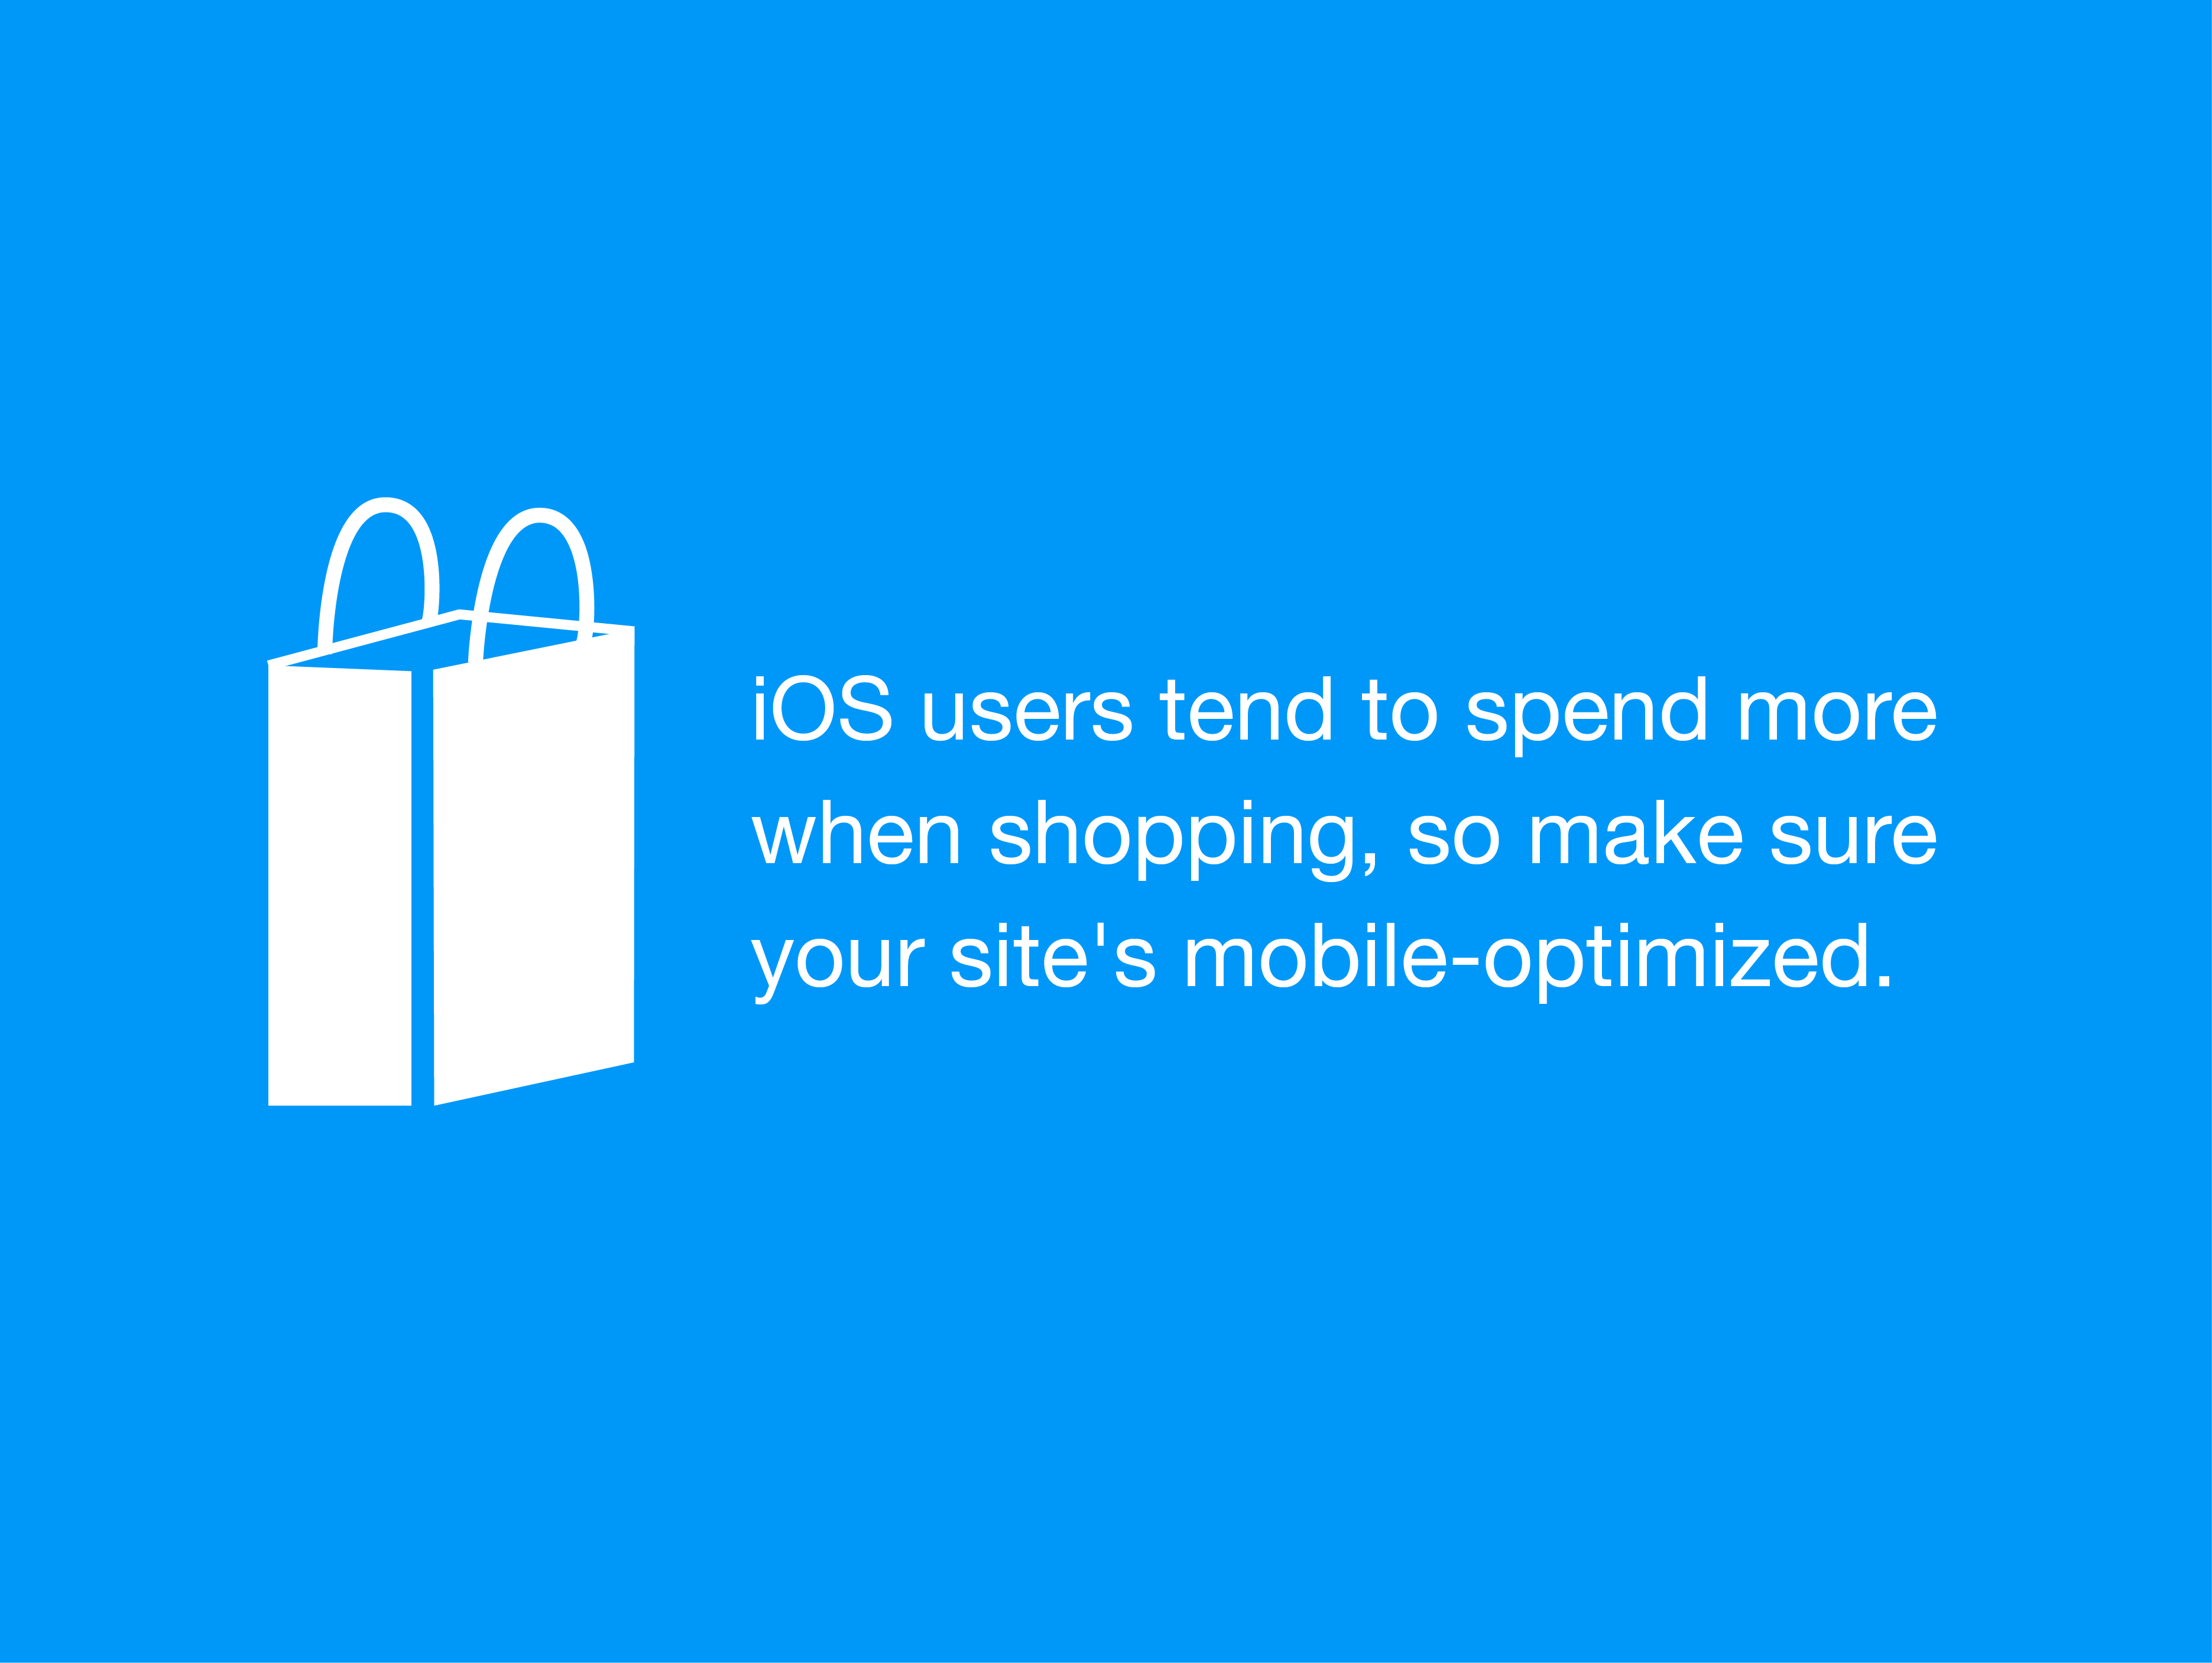 addthis-ecommerce-ios-shoppers-2